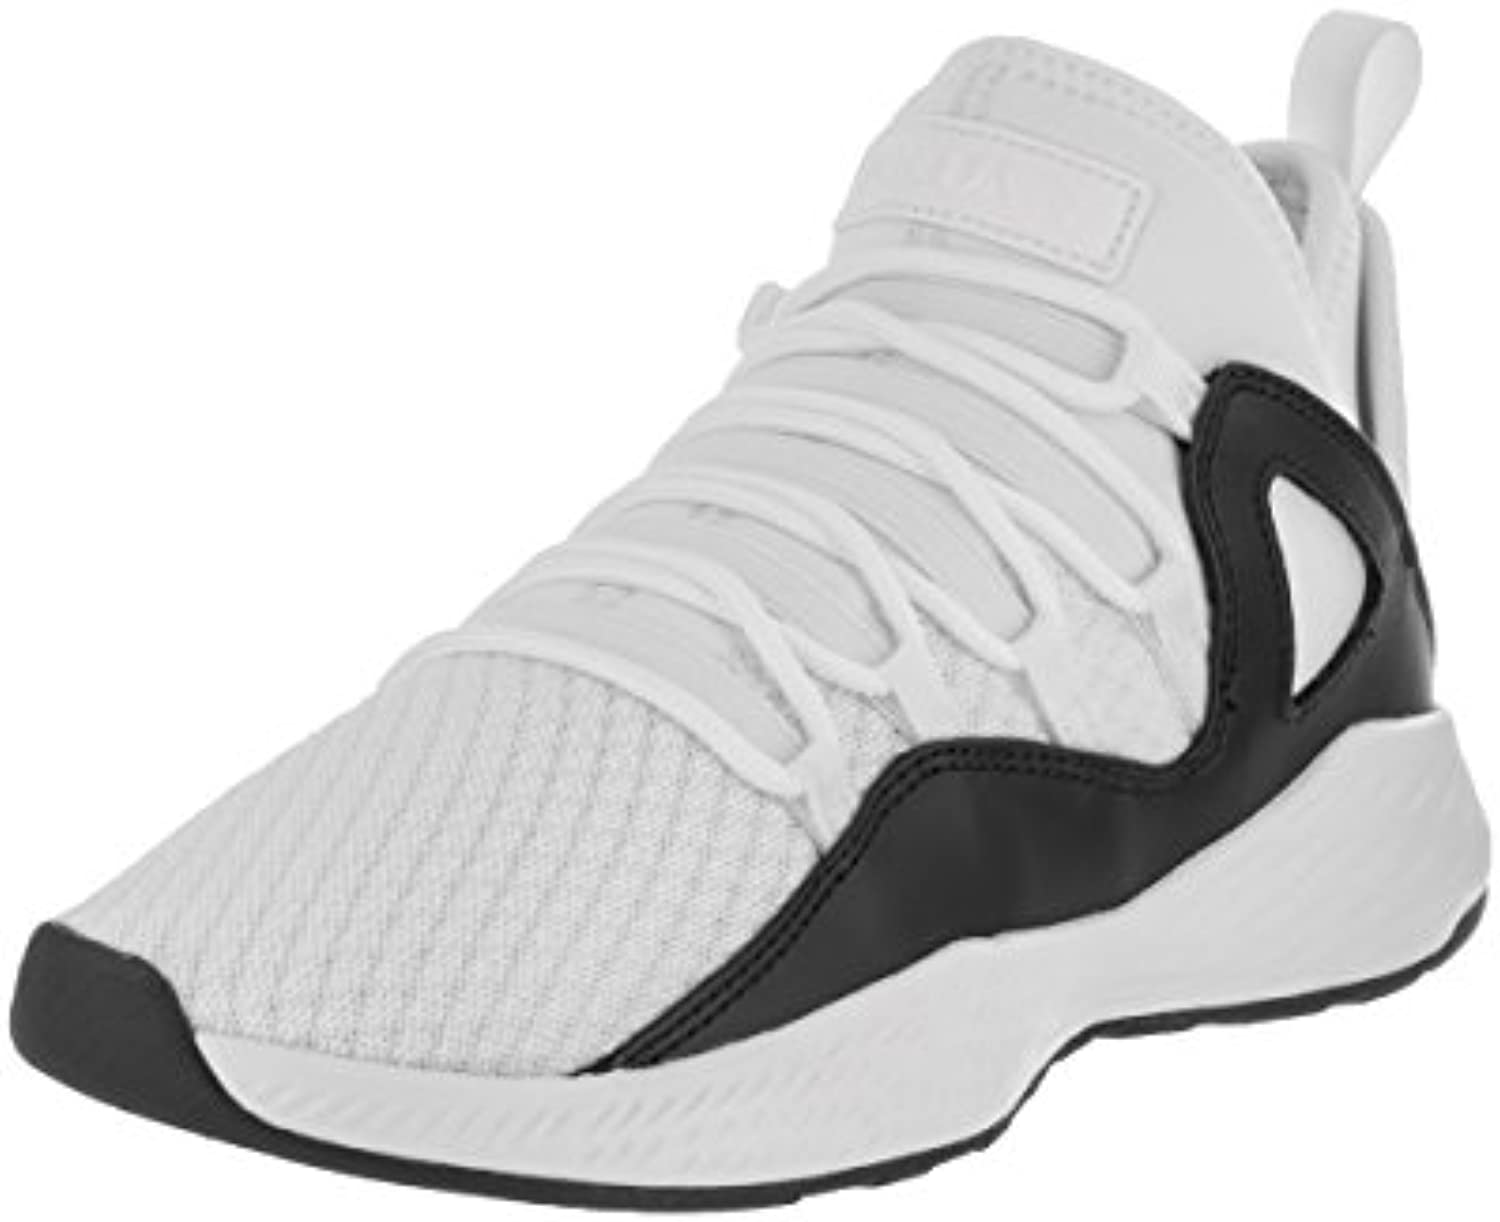 Jordan Boy's Formula 23 Basketball Shoes